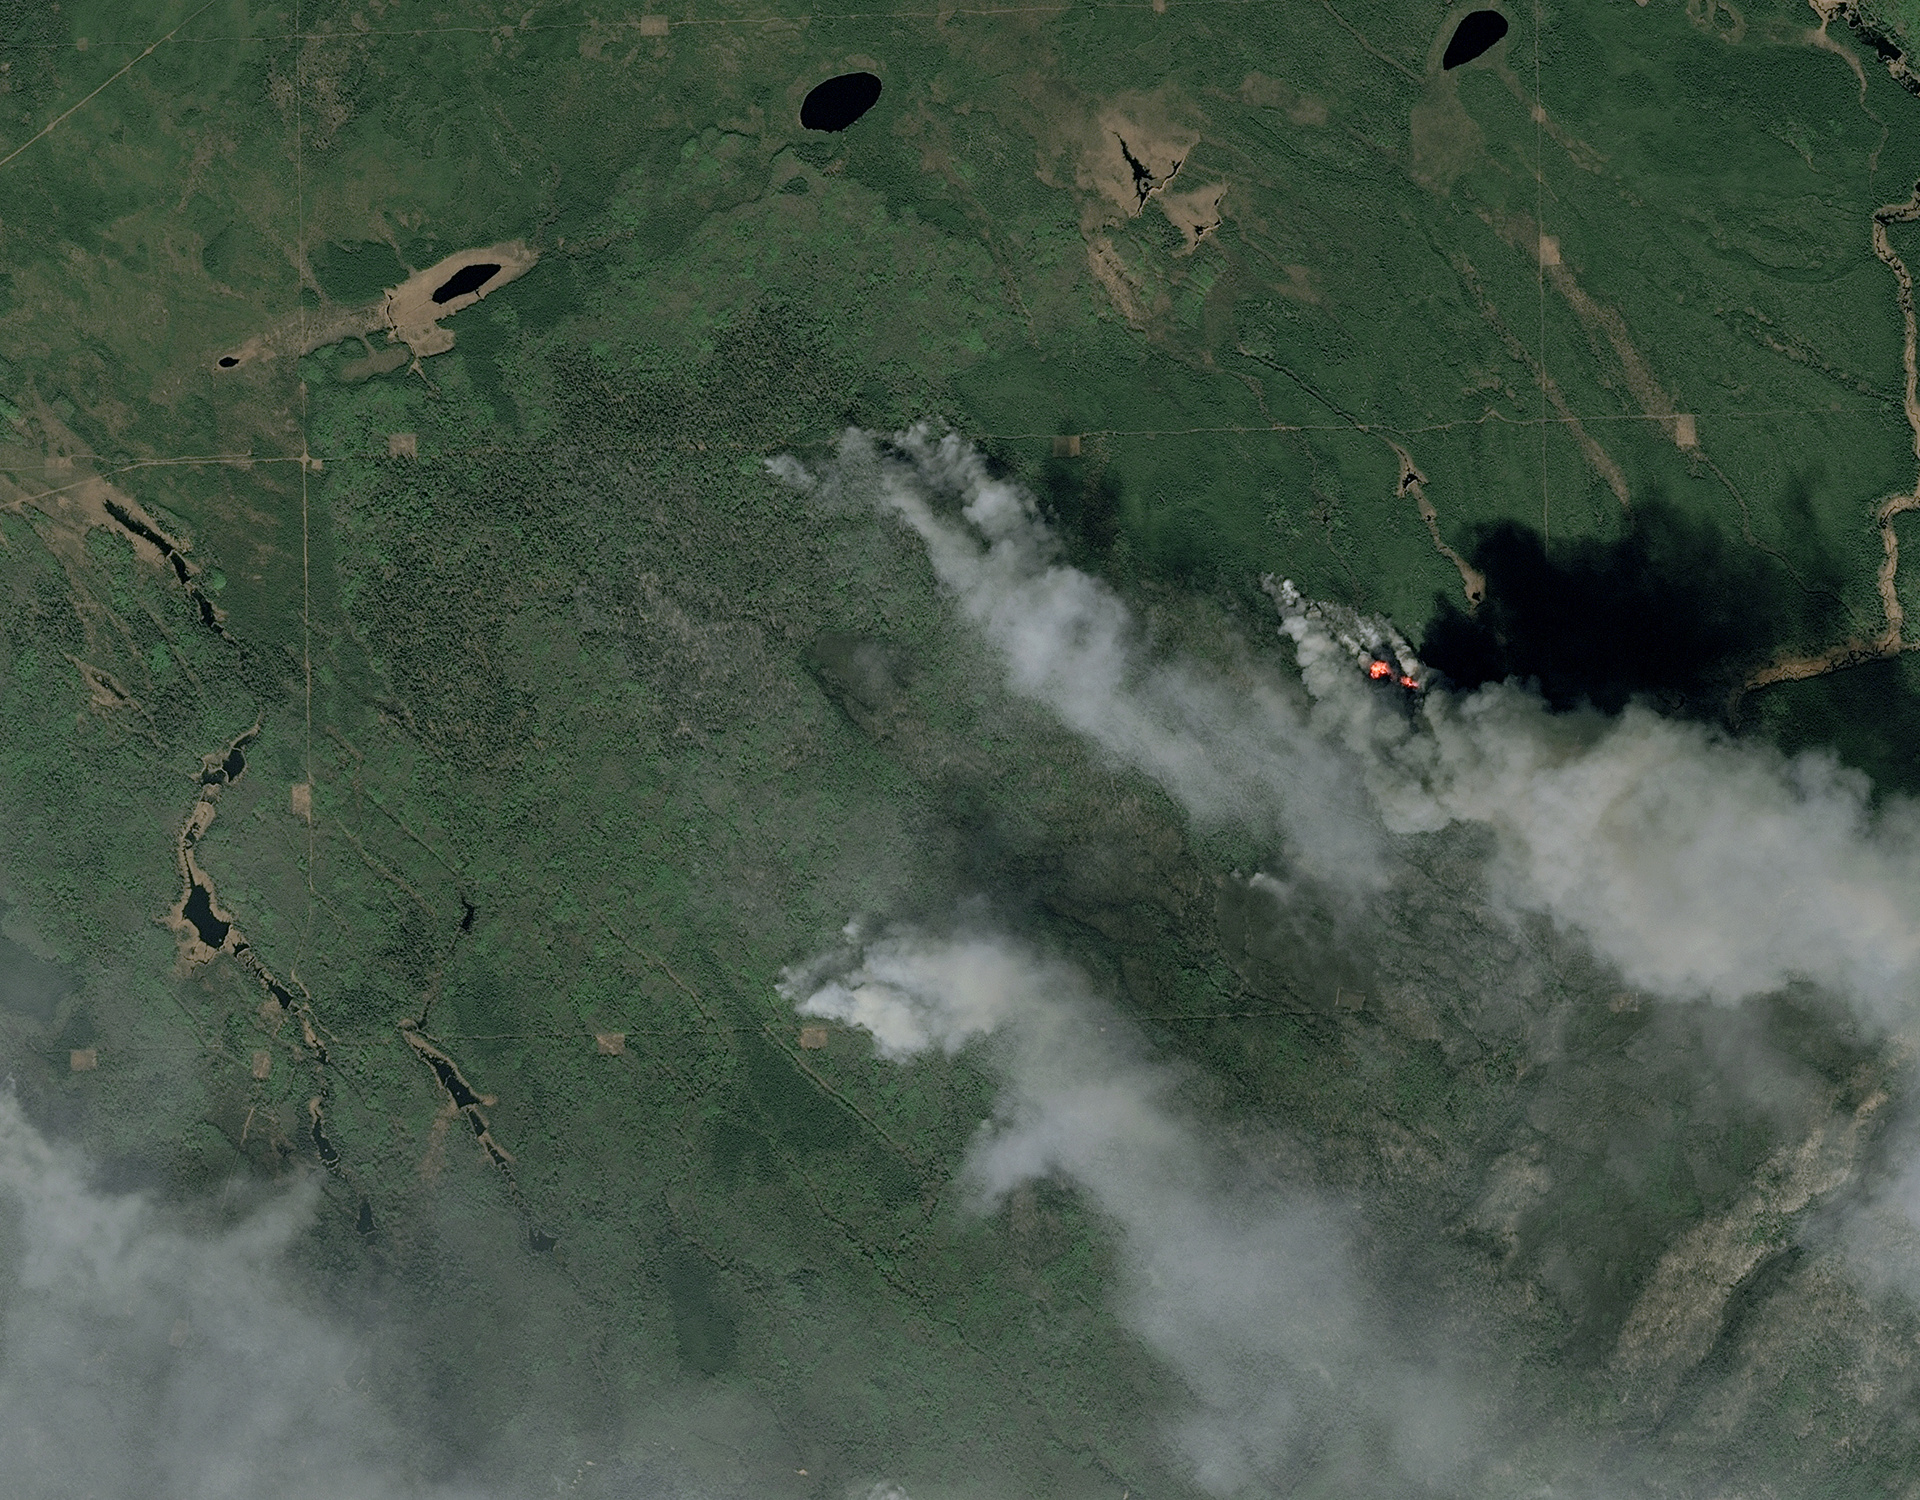 Fort Mc Murray - Alberta - Canada - Wild fires - Incendies - Feux - 6 mai 2016 - Satellite - SPOT 7 - Earth Observation - Airbus Defence and Space